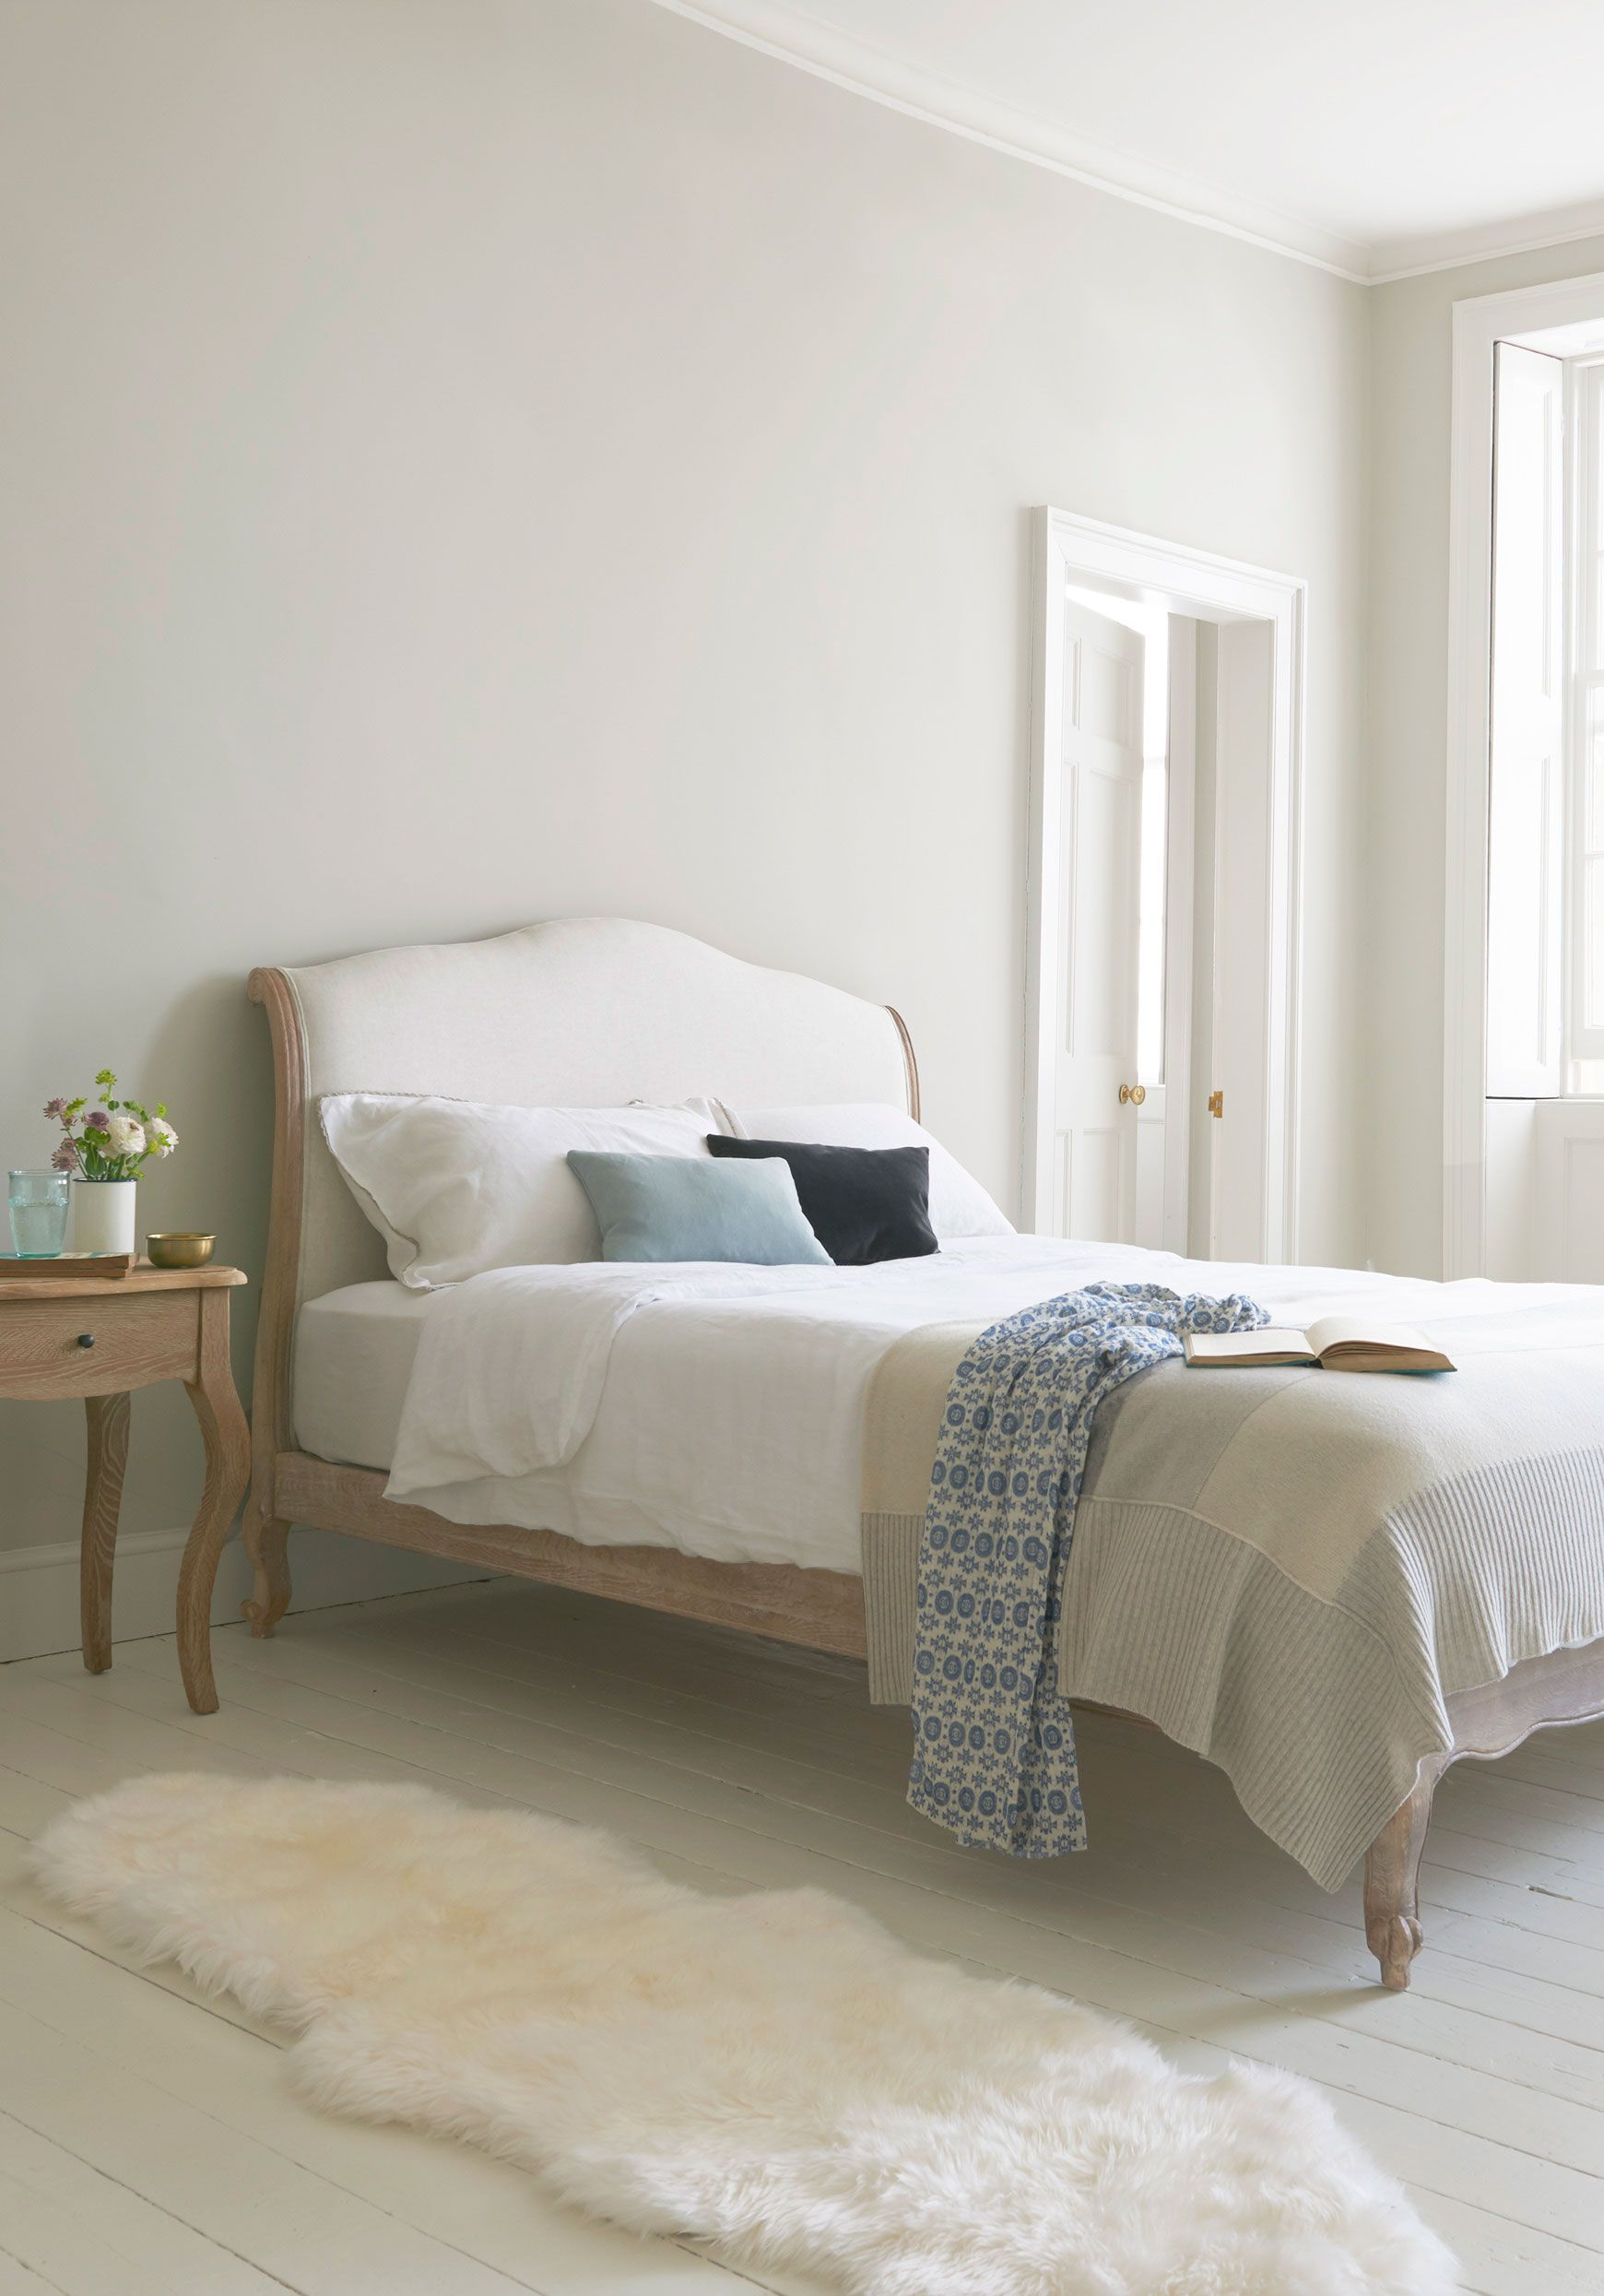 Coco bed french bed bedrooms and house